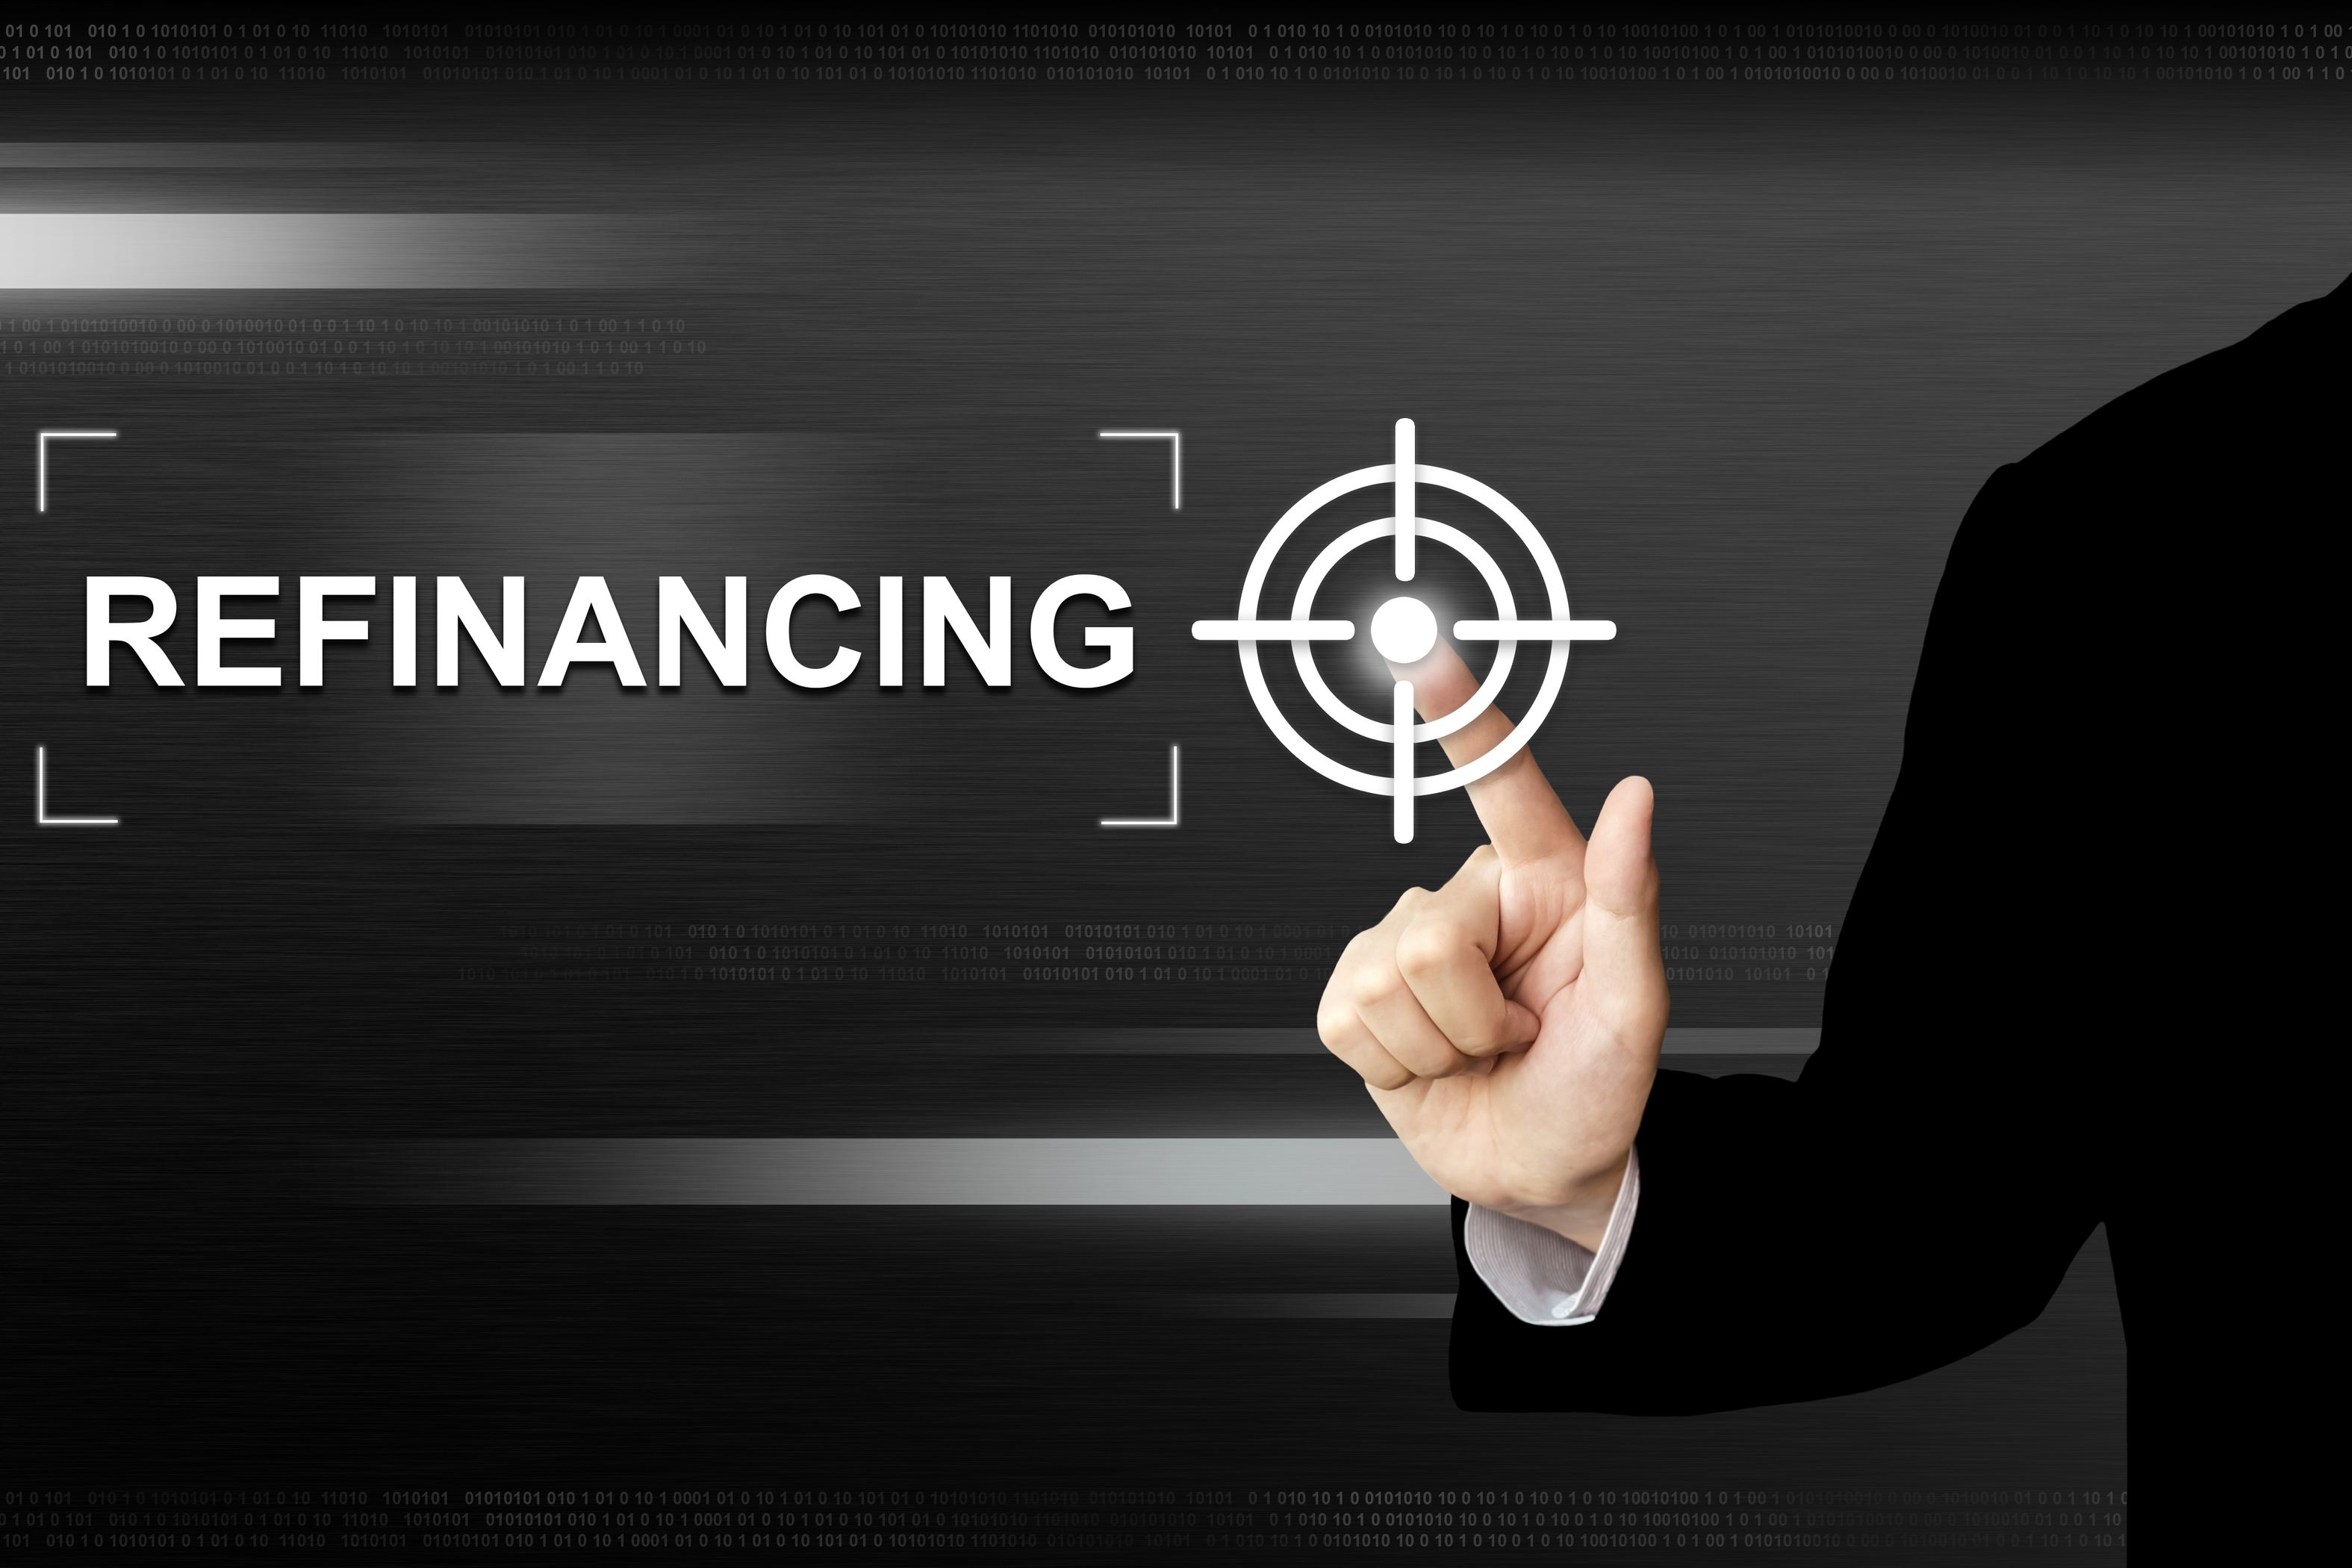 business hand clicking refinancing button on a touch screen interface